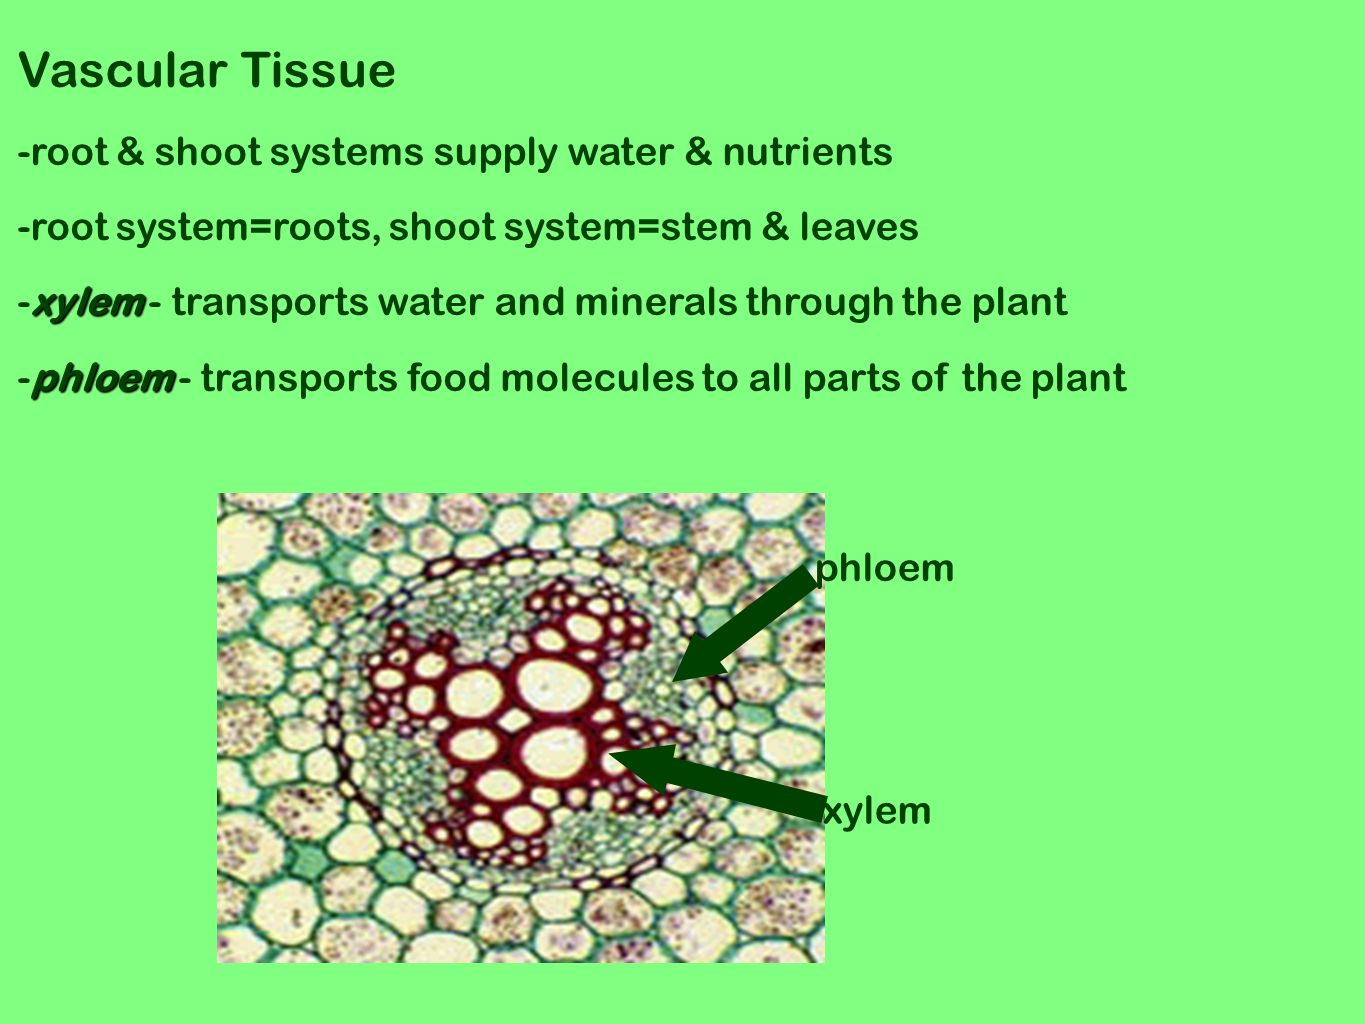 xylem tissue in plants transports minerals and Xylem transport water and minerals from the roots to the rest of the plant   vascular tissue provides stiffness and allows some plants such as sequoias to  grow.